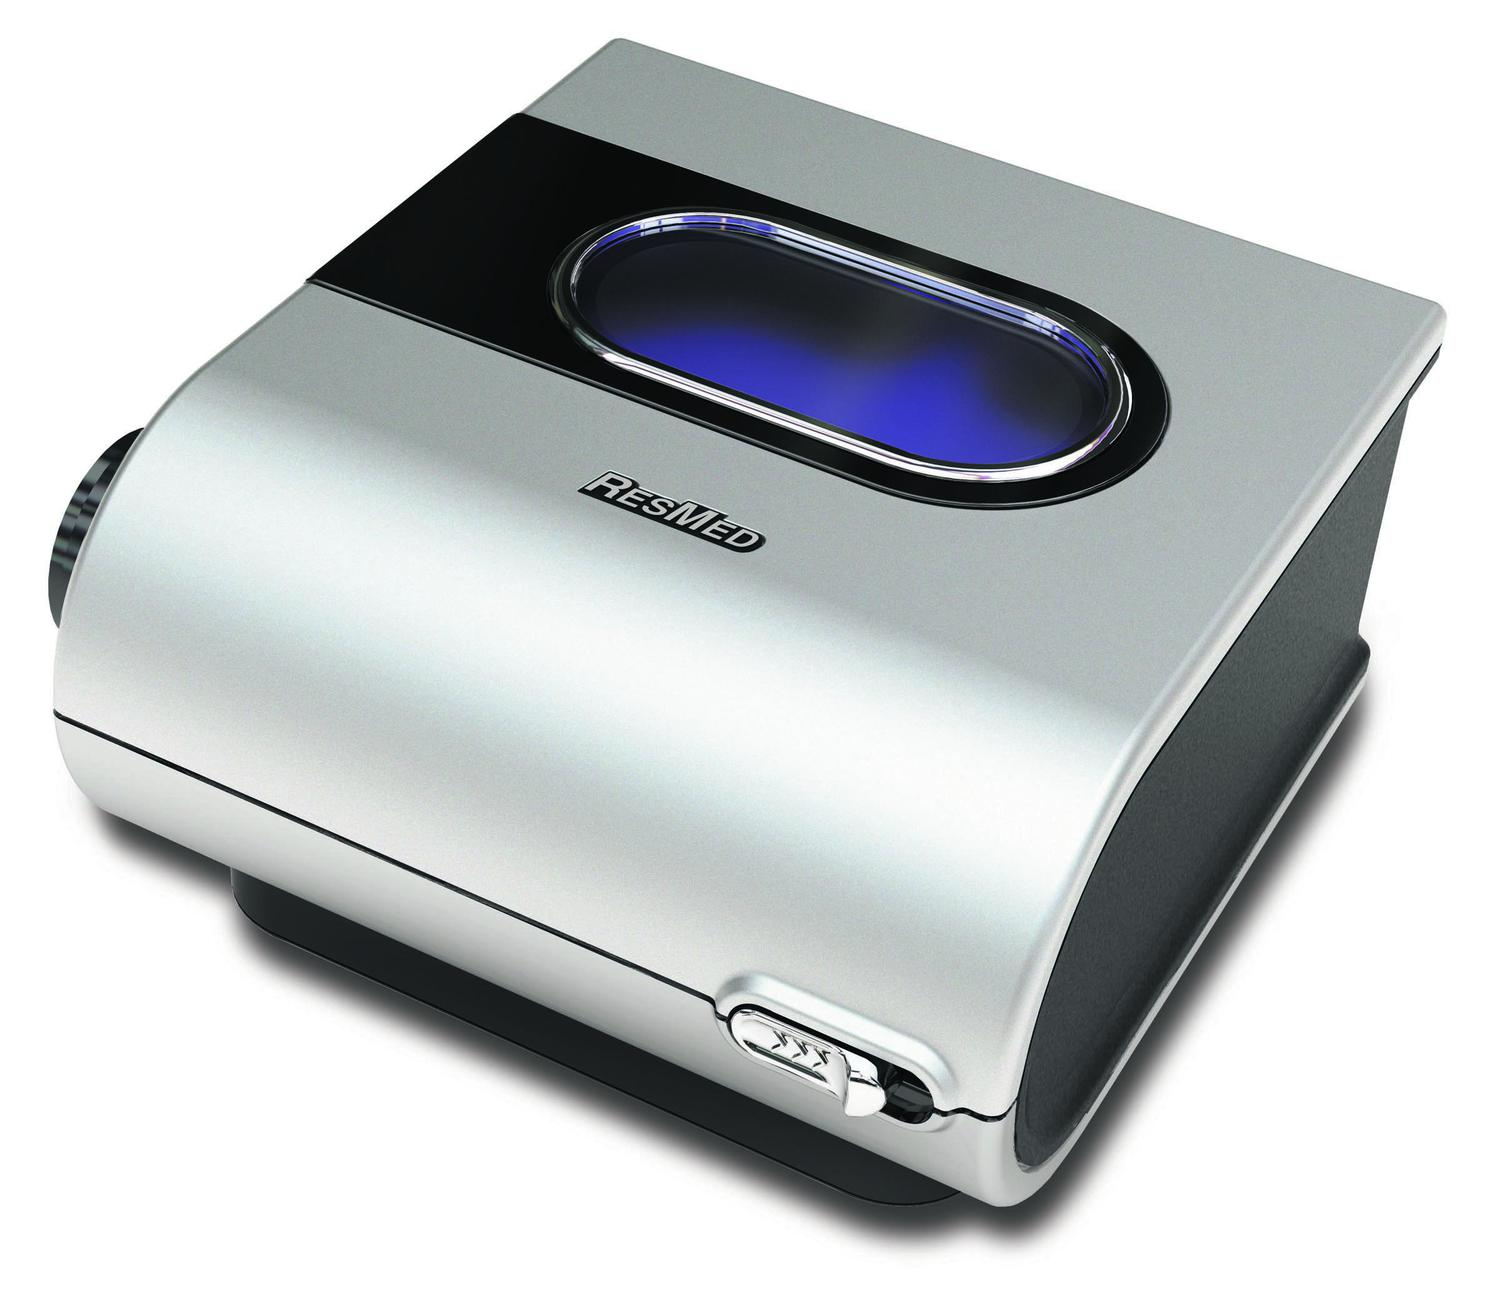 resmed h5i humidifier user manual